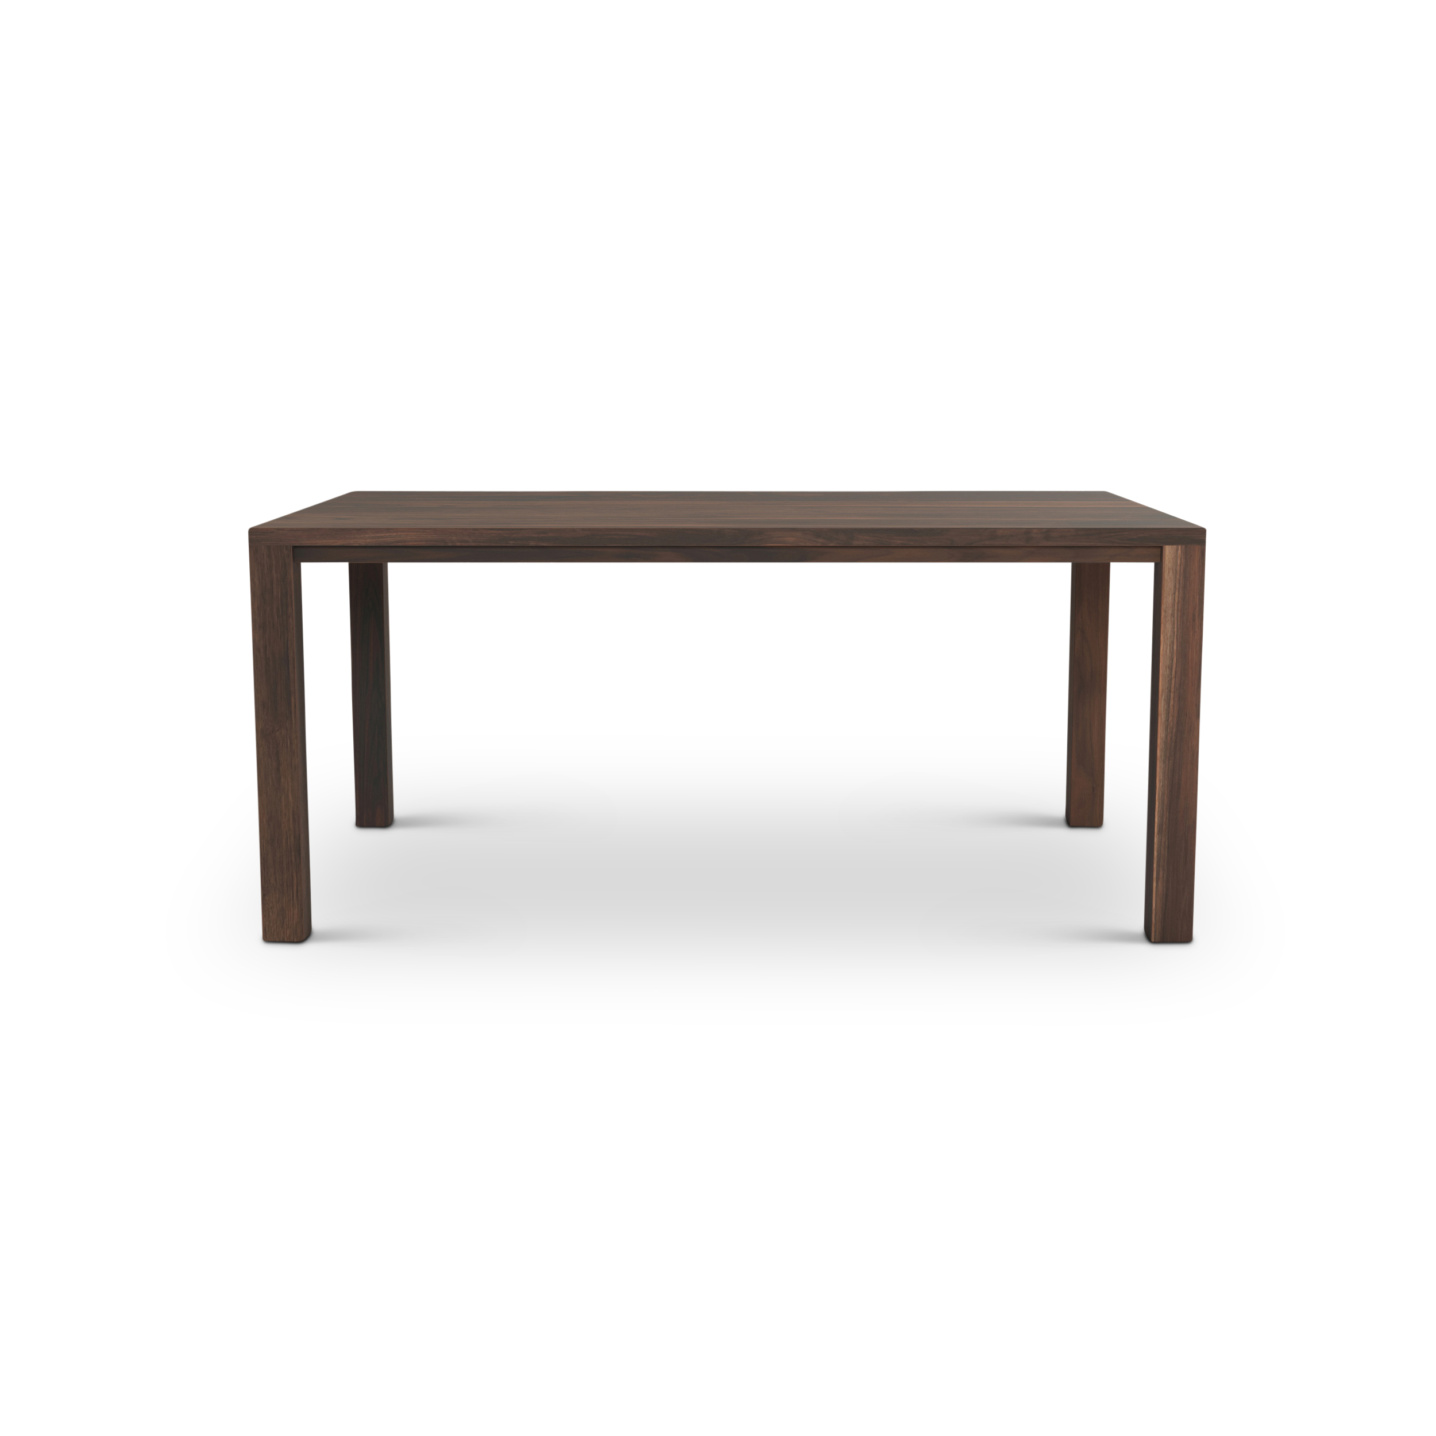 Solid Walnut Table with square legs